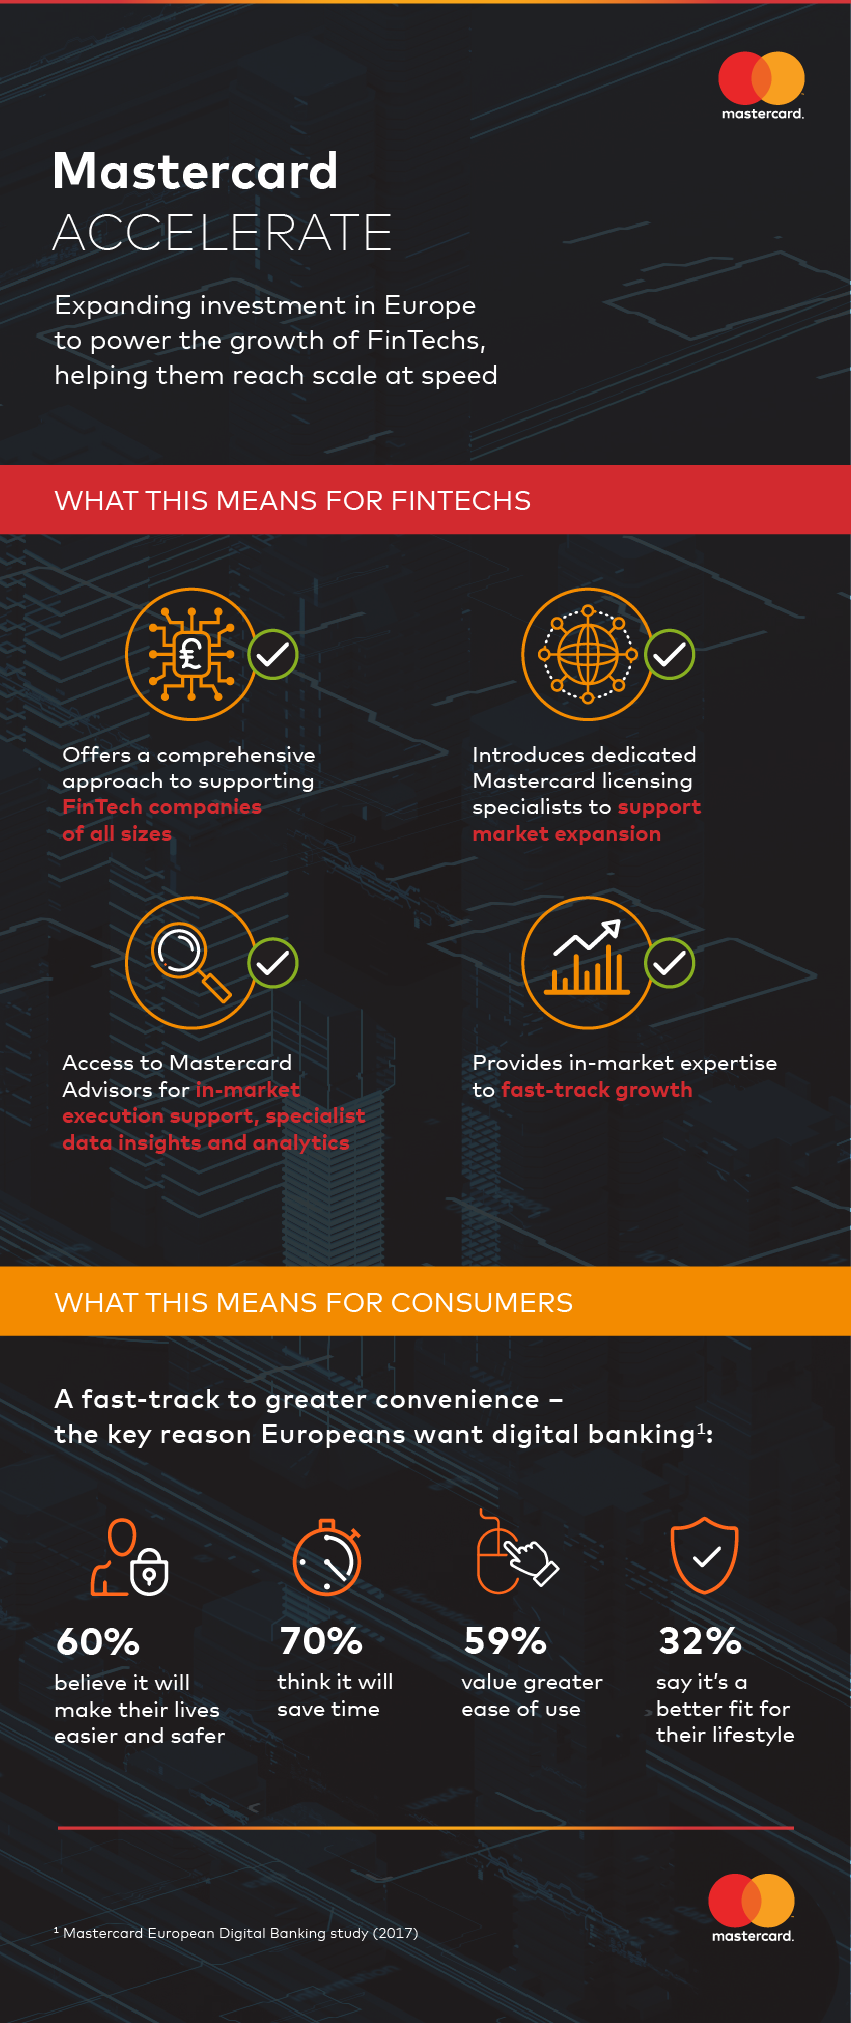 Mastercard Accelerate launch_Infographic